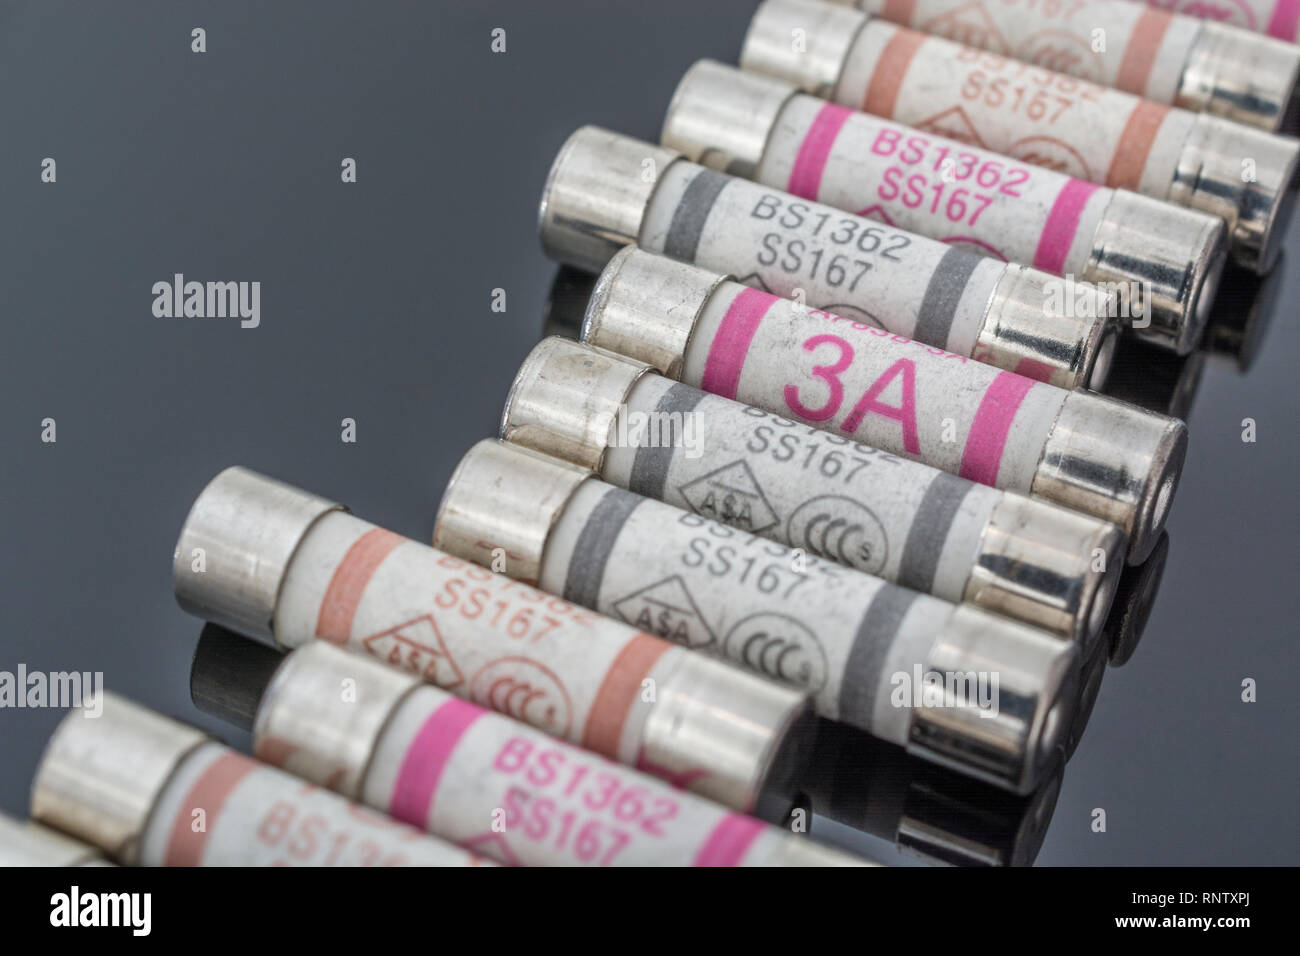 Domestic appliance 3A, 5A & 13A electrical fuses (Ceramic Cartridge type) on reflective black background. Metaphor electrical safety. 25mm L x 6.3mm D Stock Photo